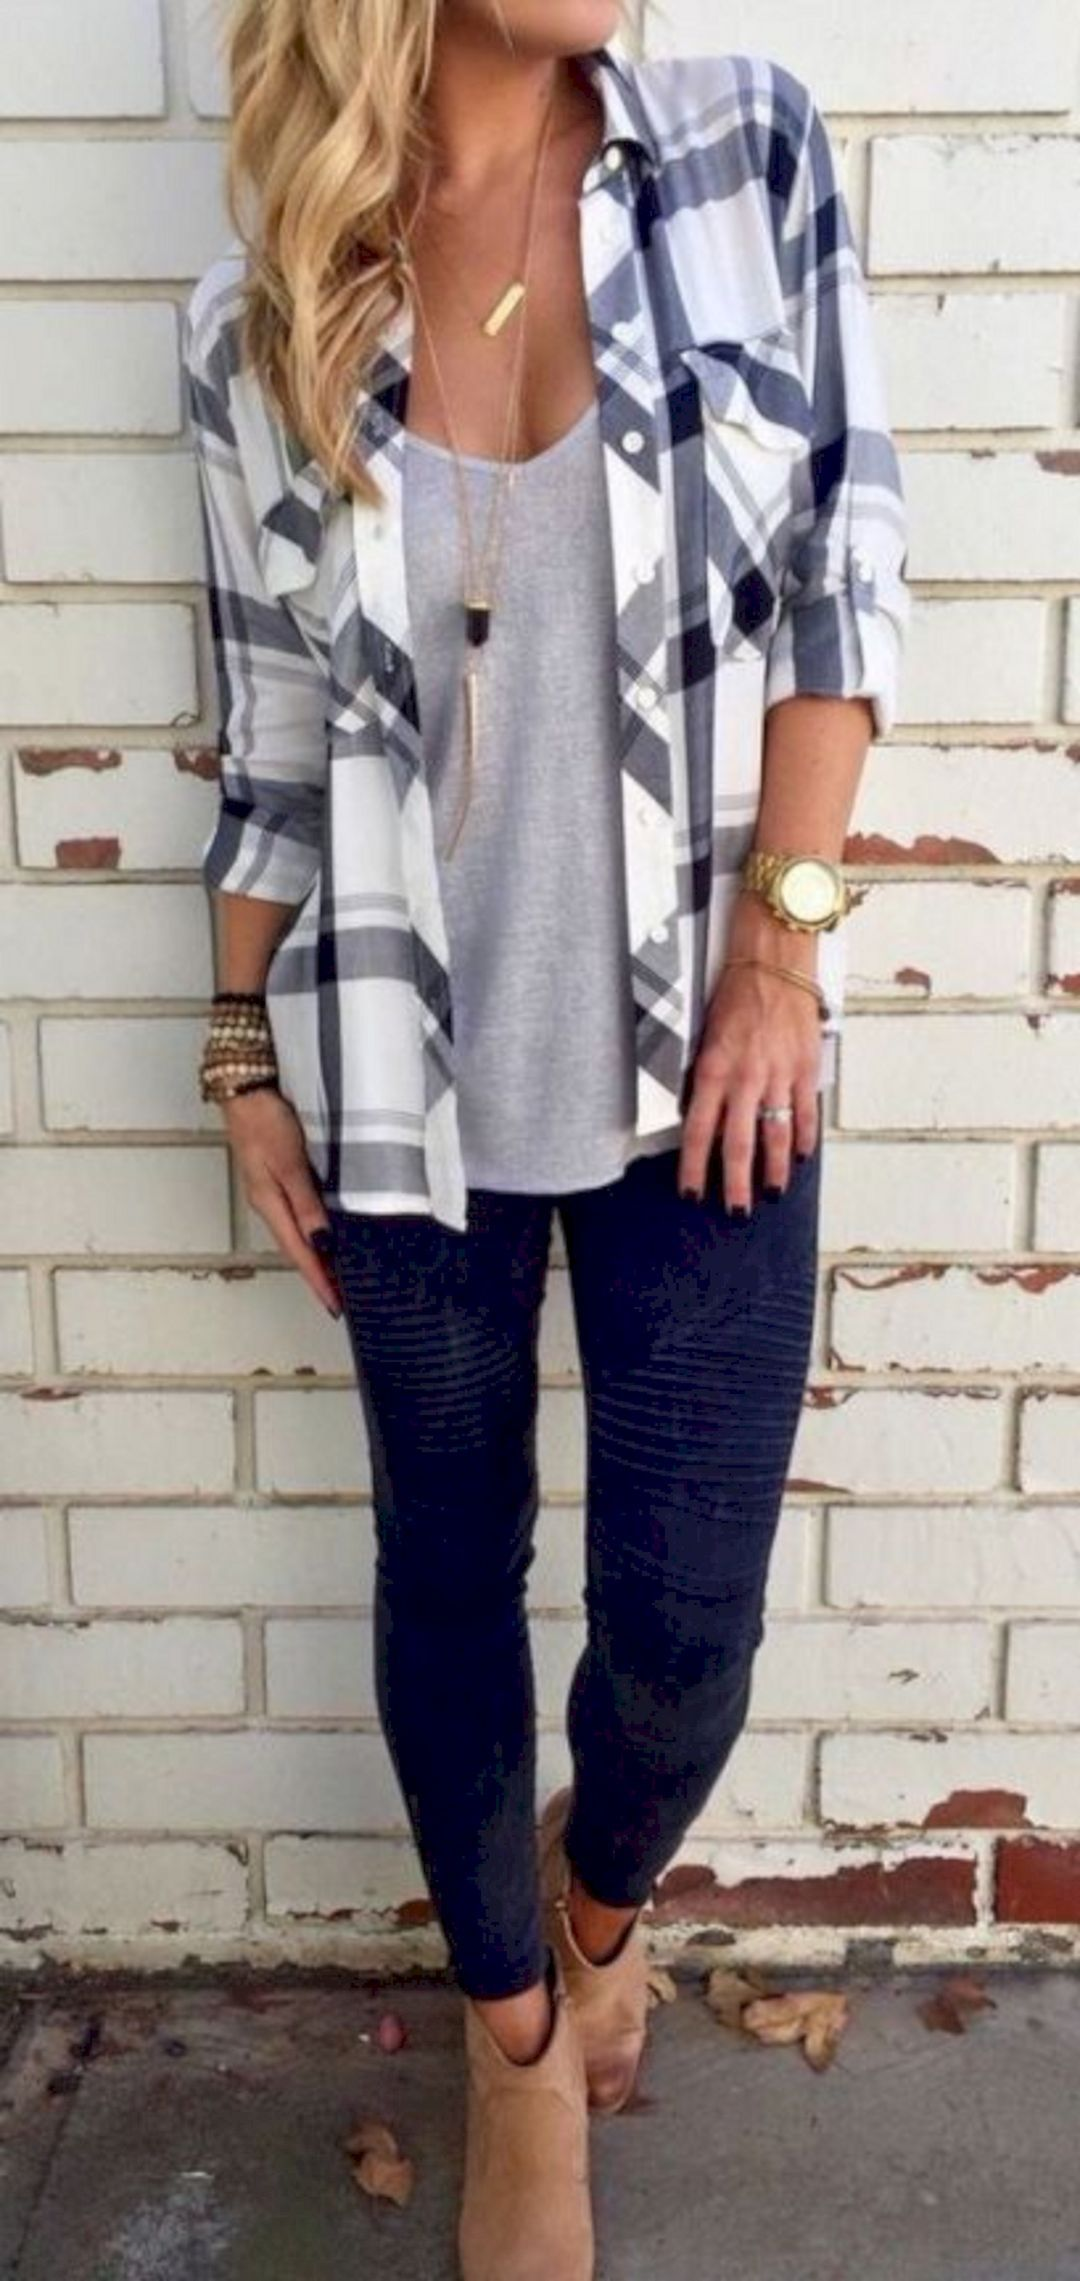 Flannel shirt outfit ideas   Gorgeous Stylish Mom Outfits Ideas For Beautiful Mother